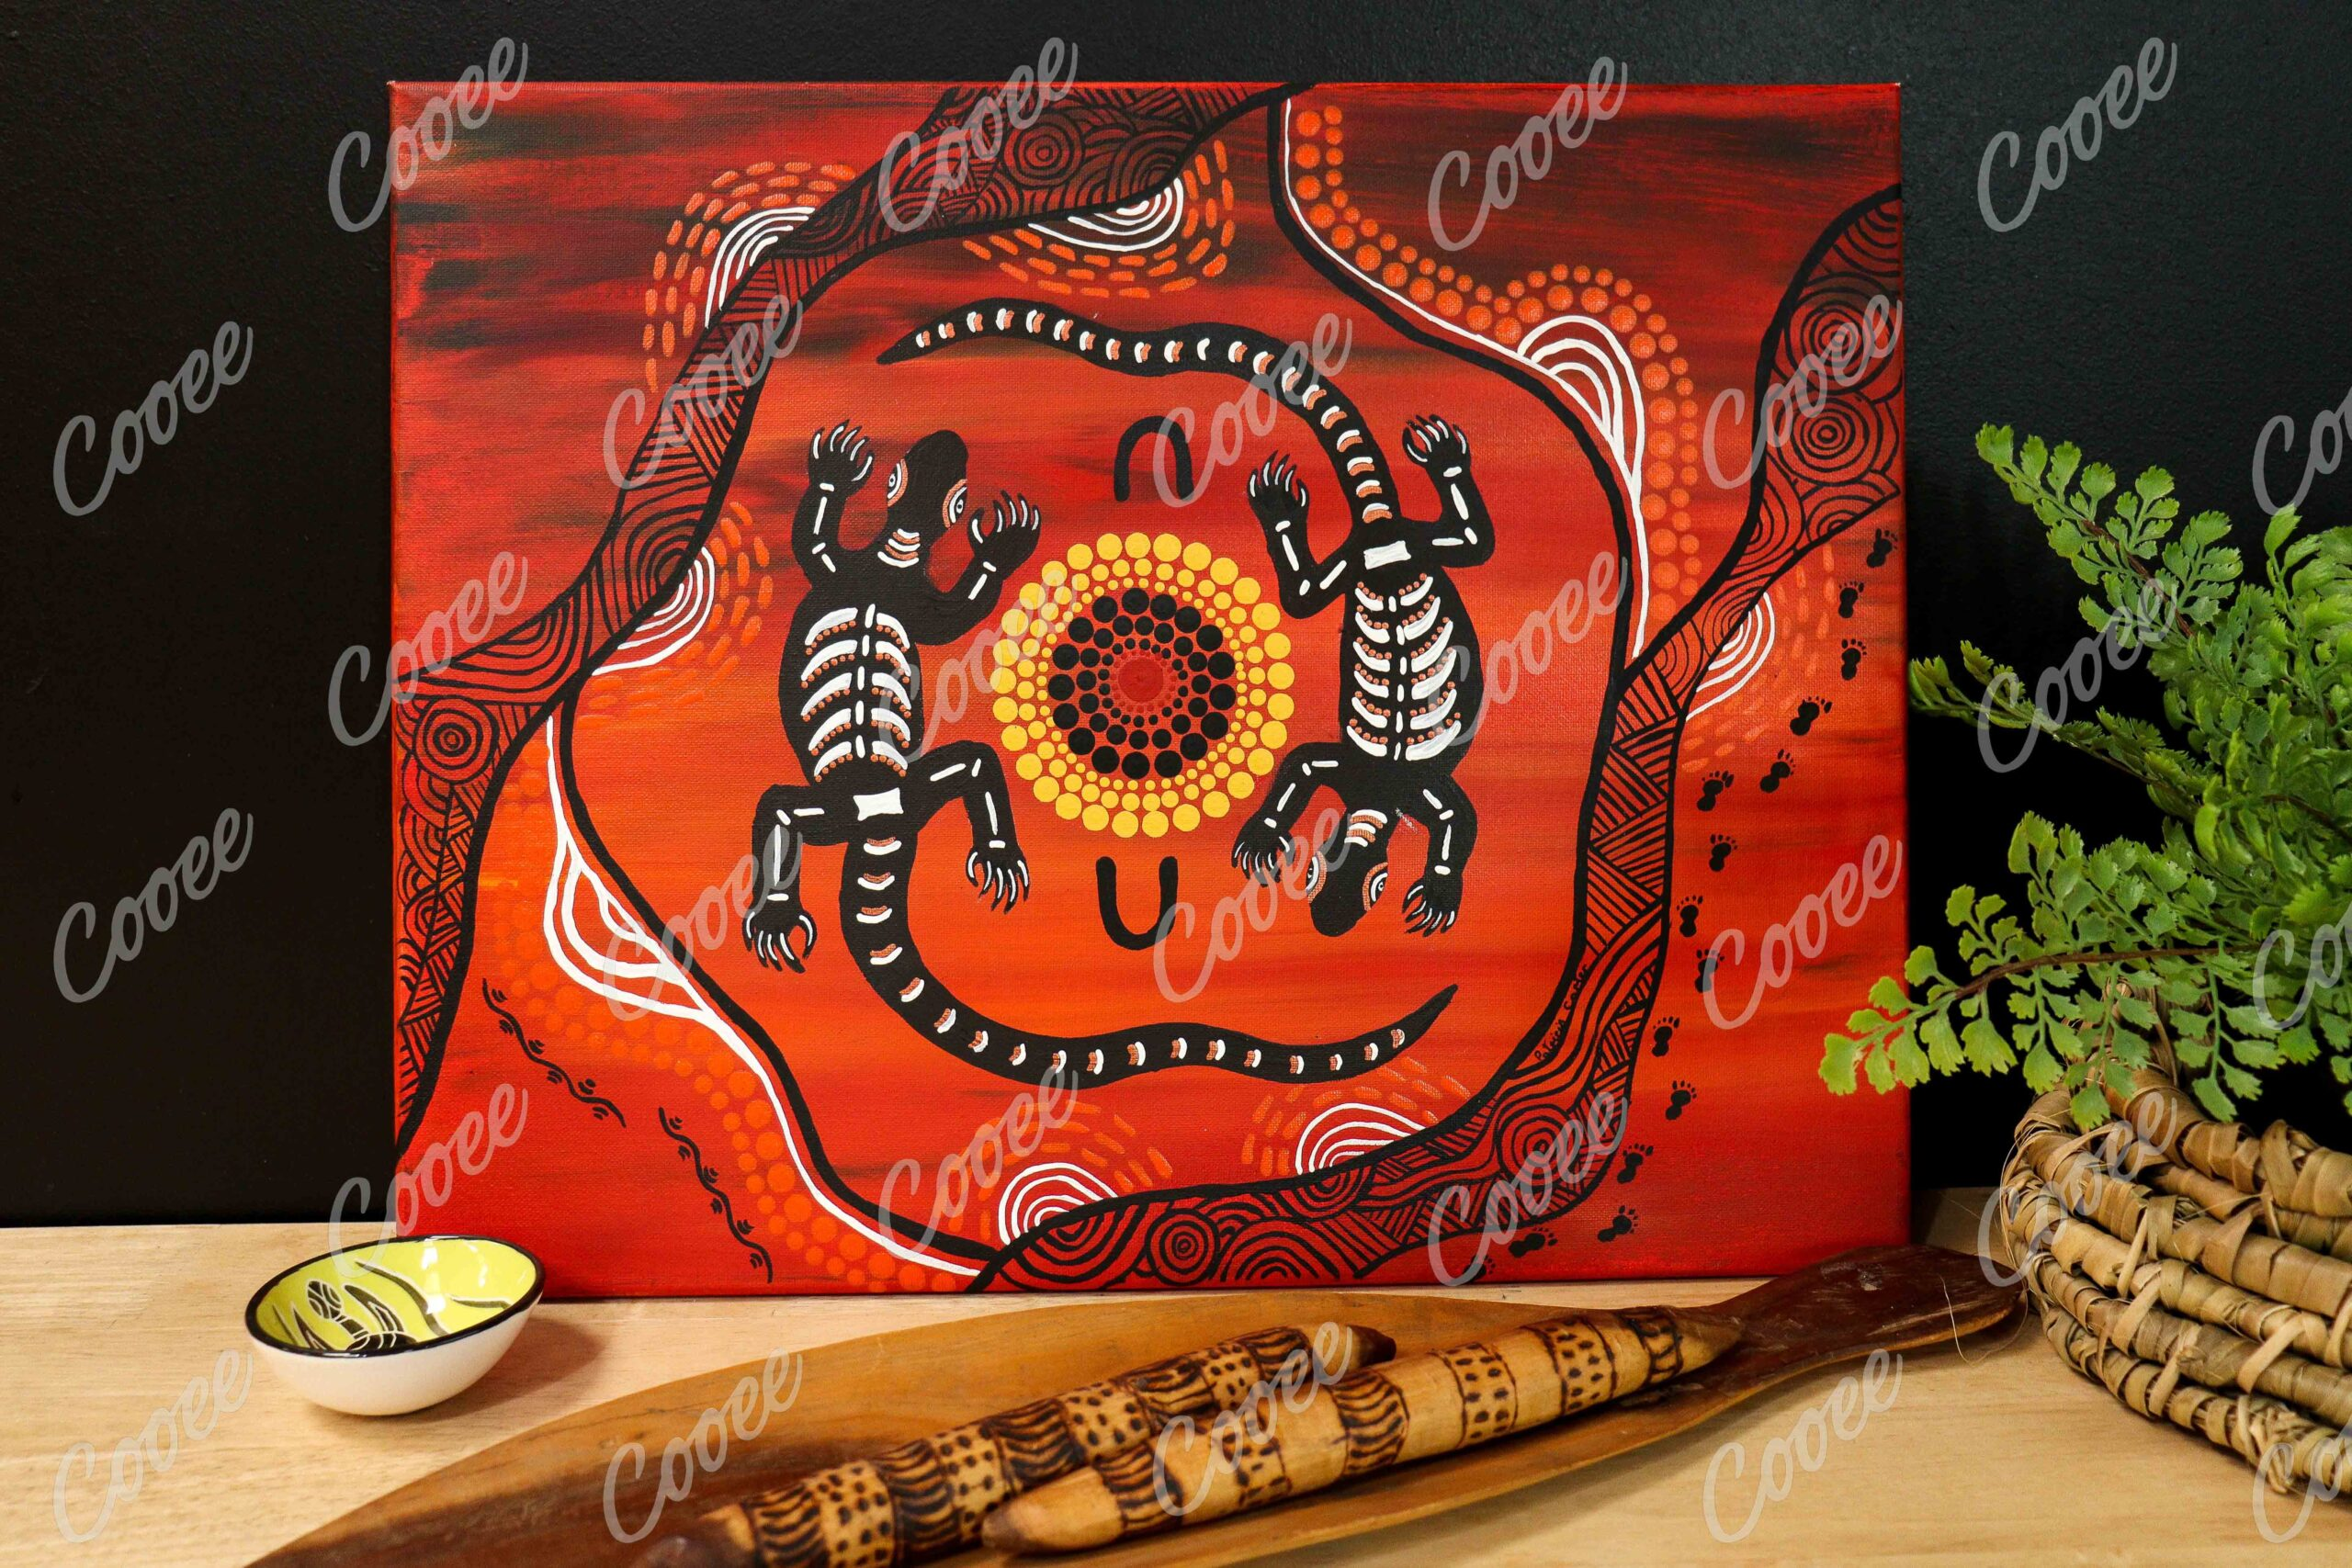 Cooee-Cafe-Original-Indigenous-Painting35